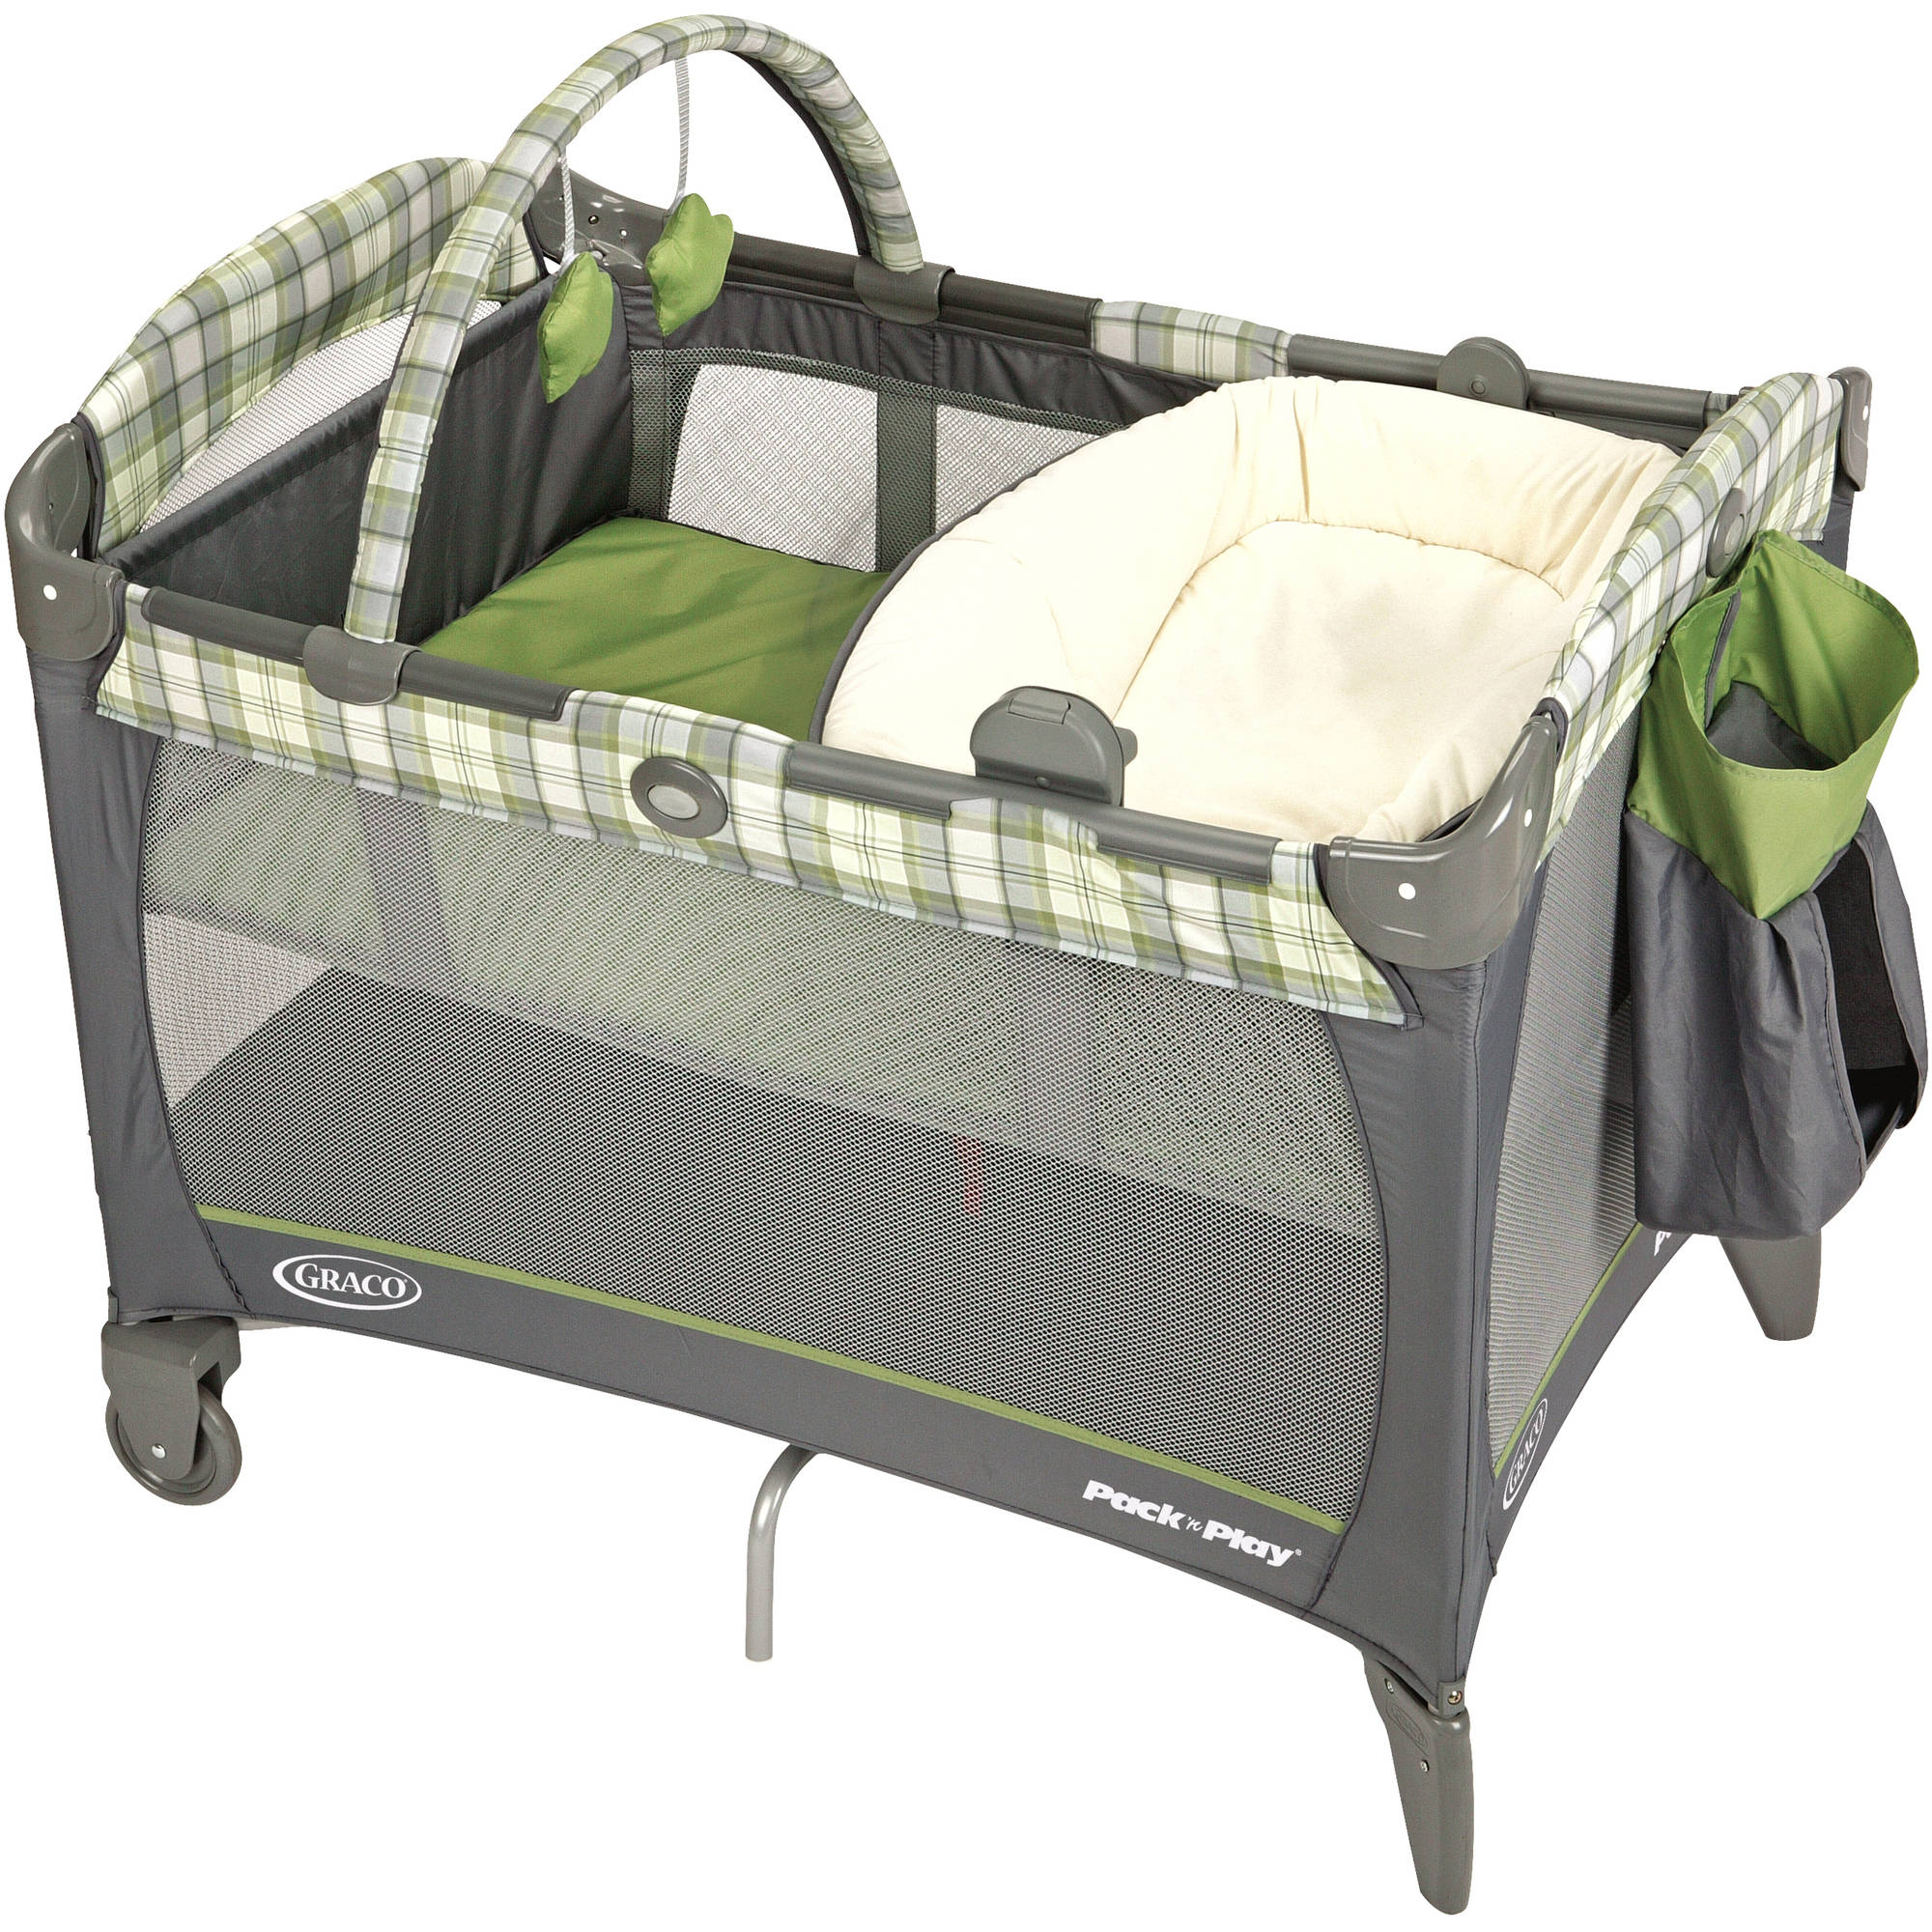 Graco Reversible Napper and Changer Pack 'n Play Playard, Roman